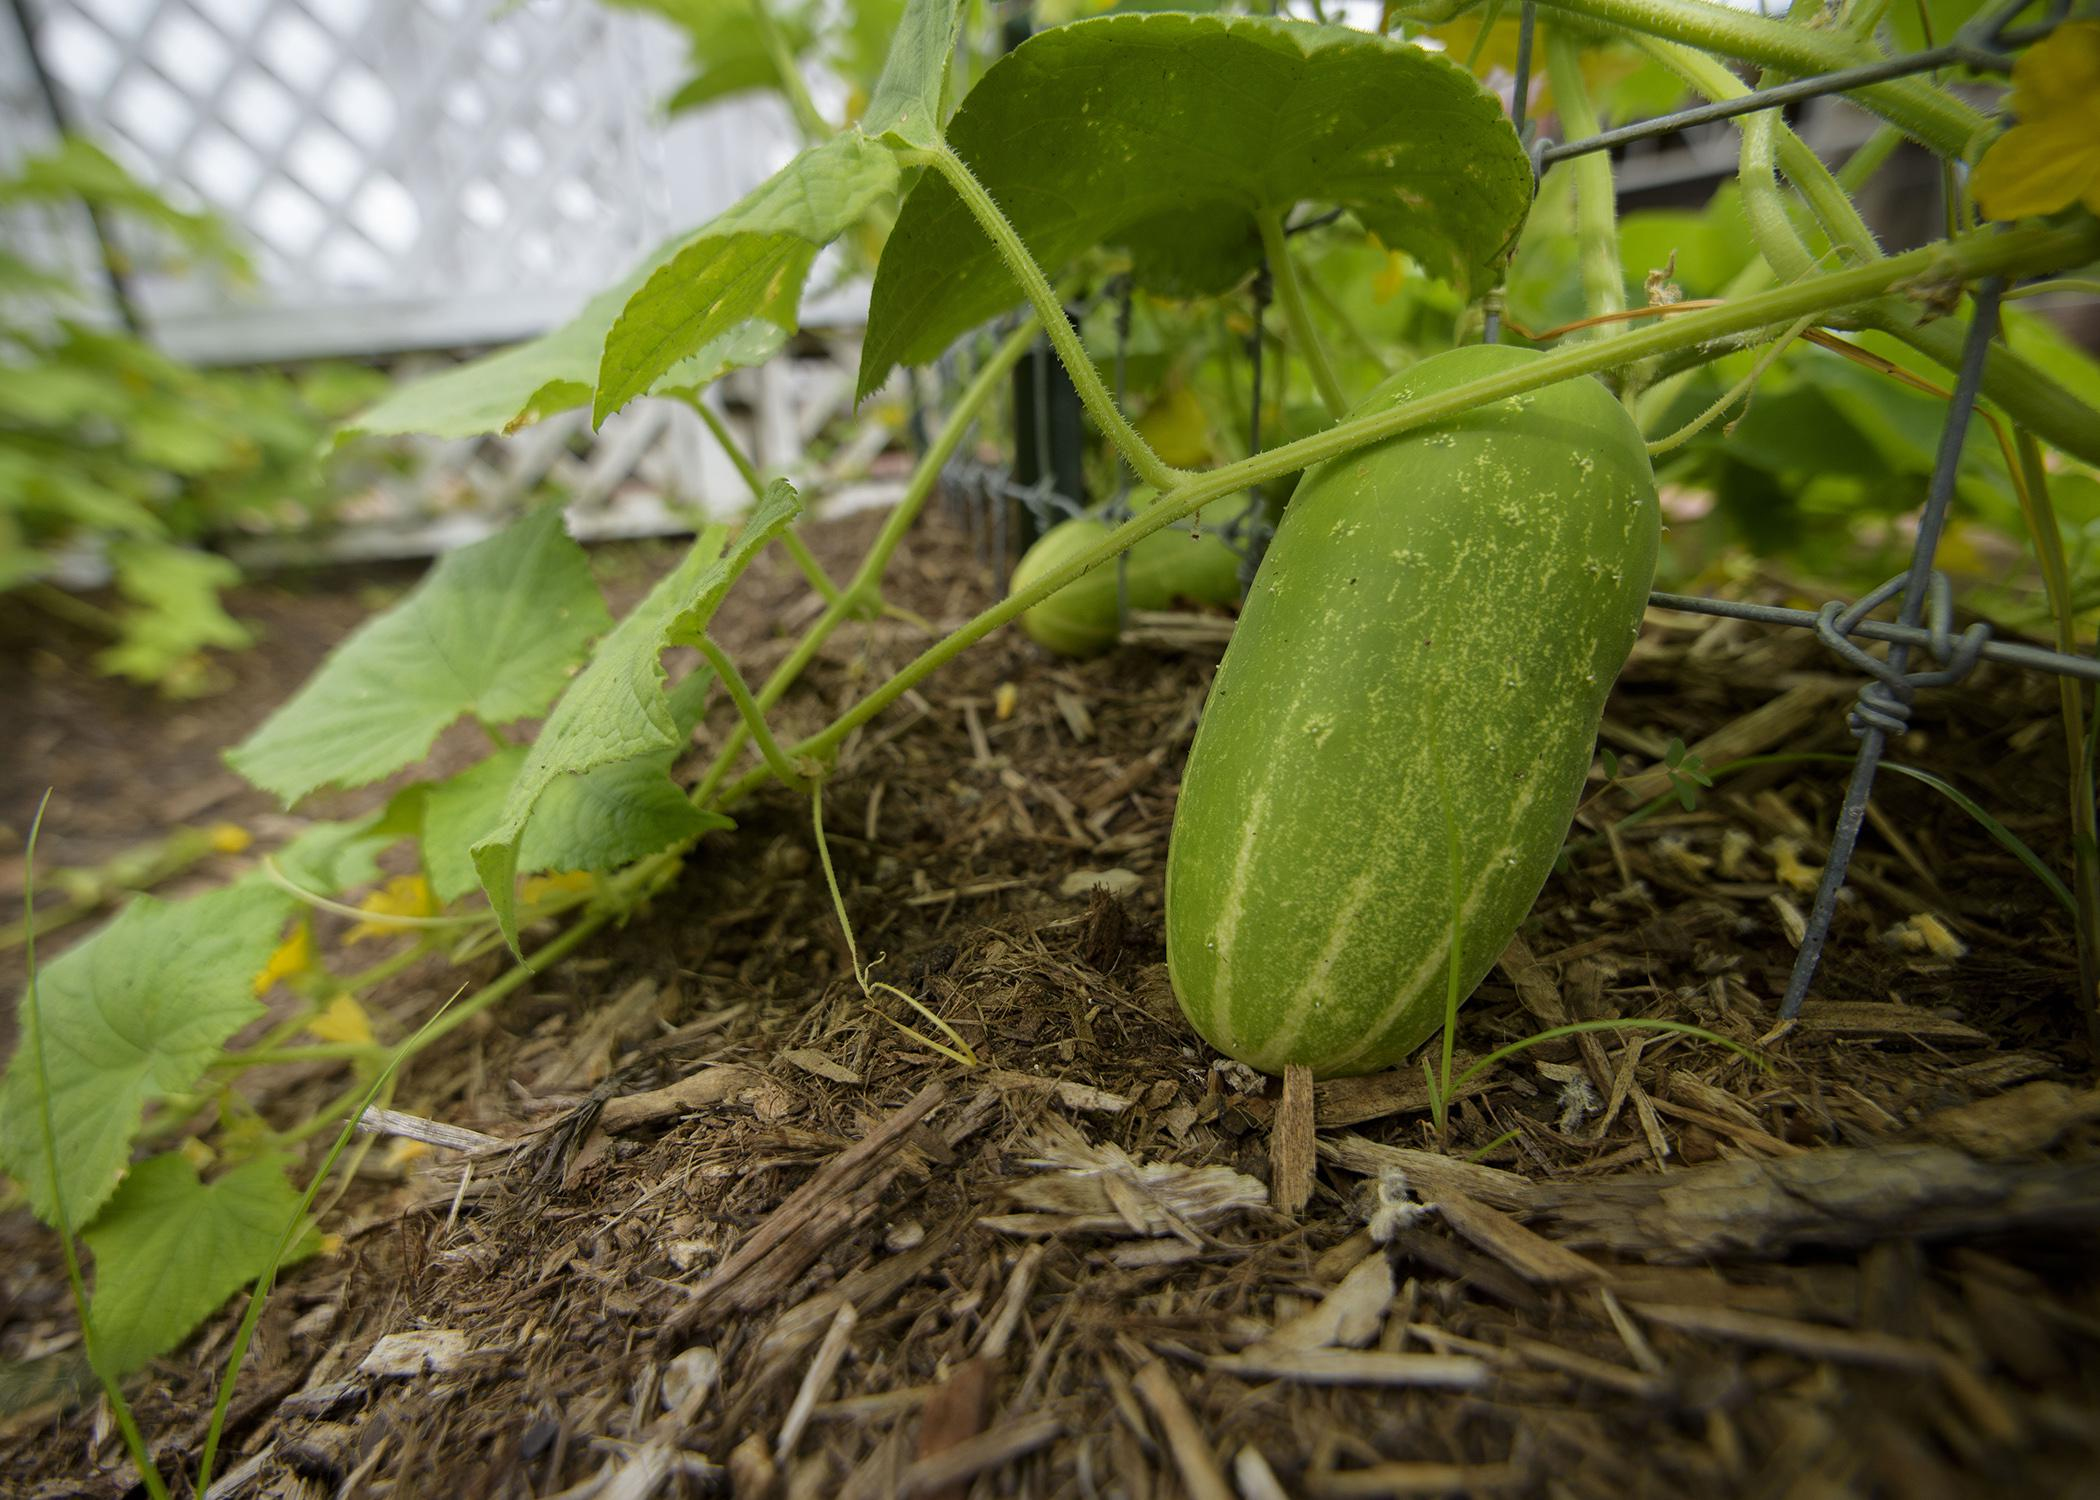 A close-up photo of a green cucumber growing on a vine with another visible in the background.